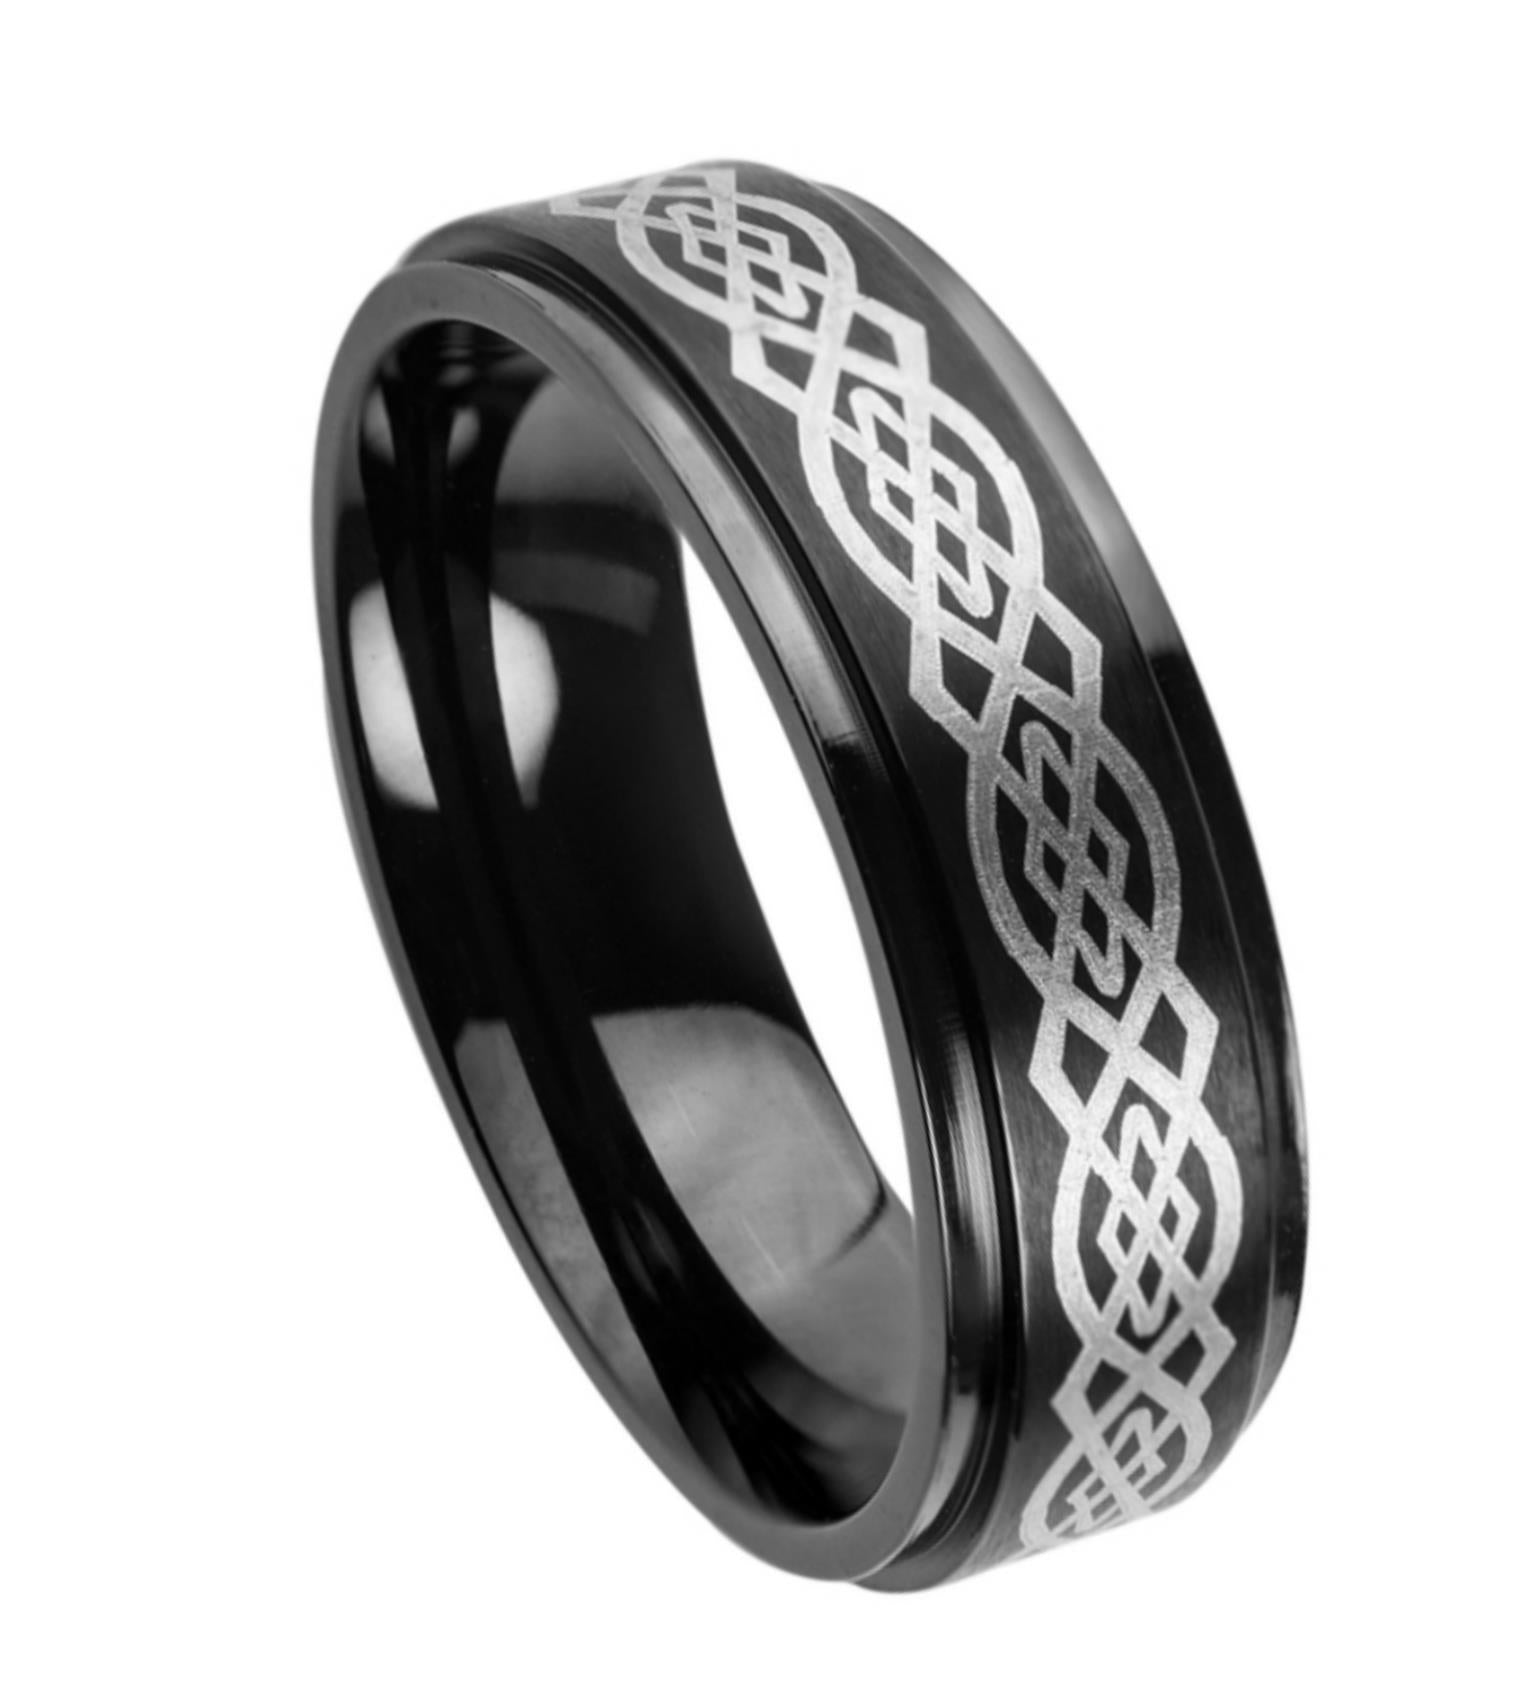 7mm Black Tungsten Ring with Laser Engraved Celtic Pattern